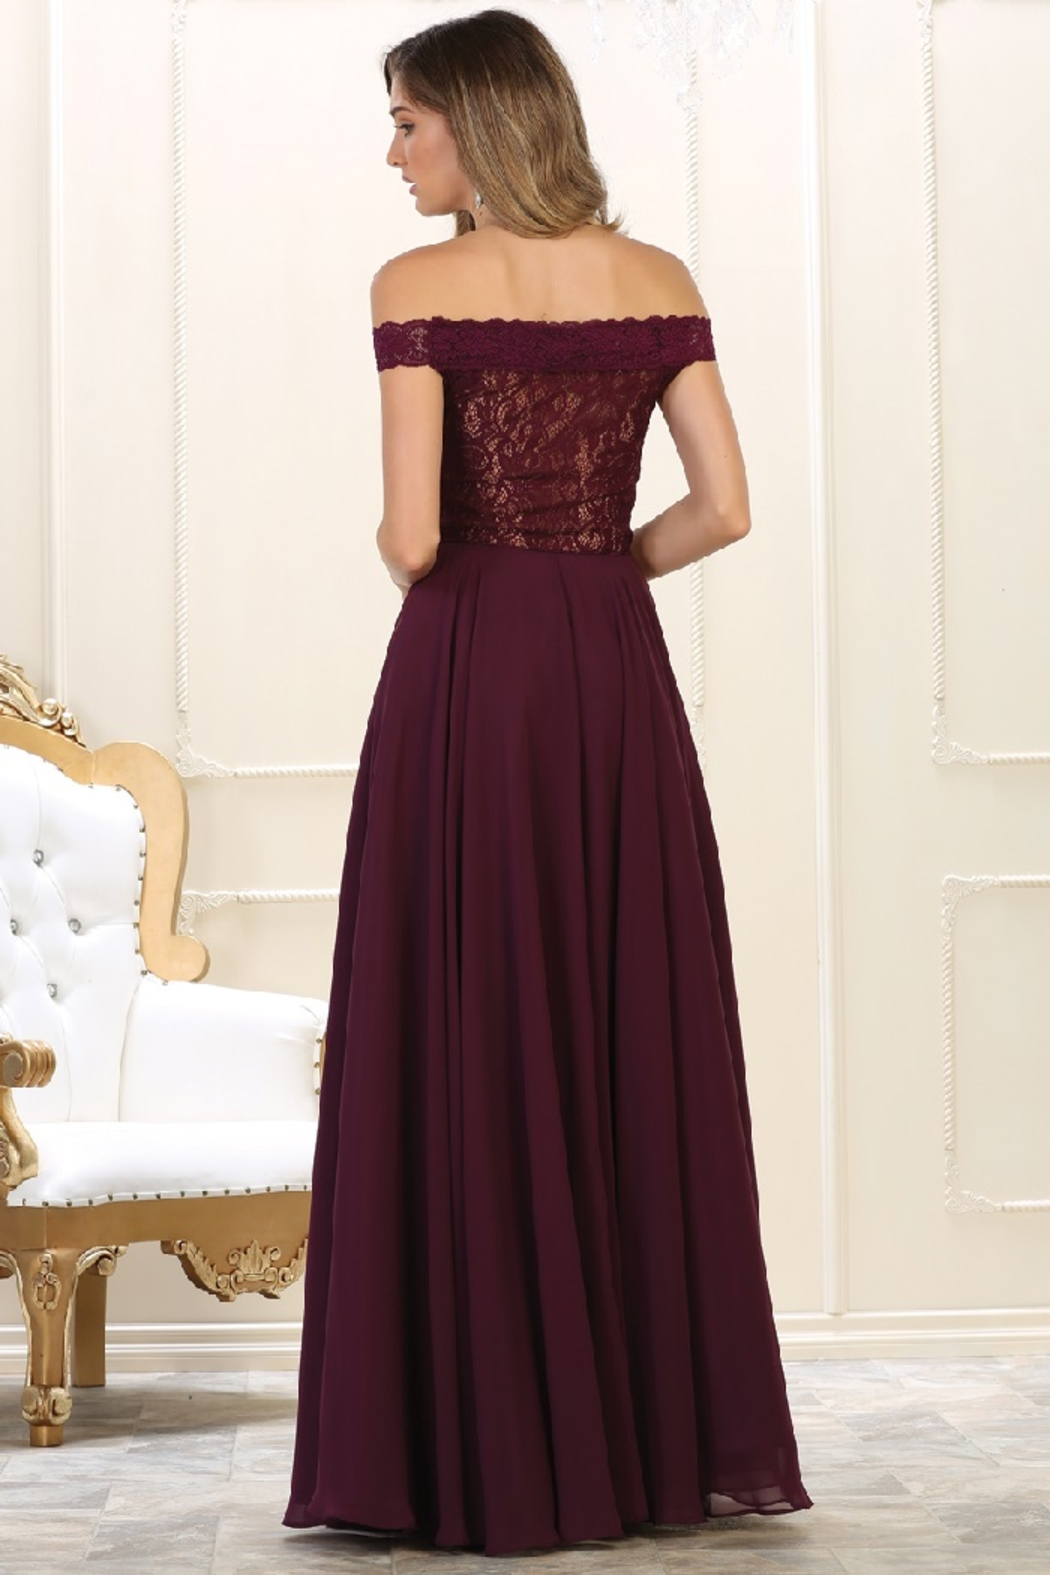 May Queen  Burgundy Lace Off Shoulder Formal Long Dress - Front Full Image